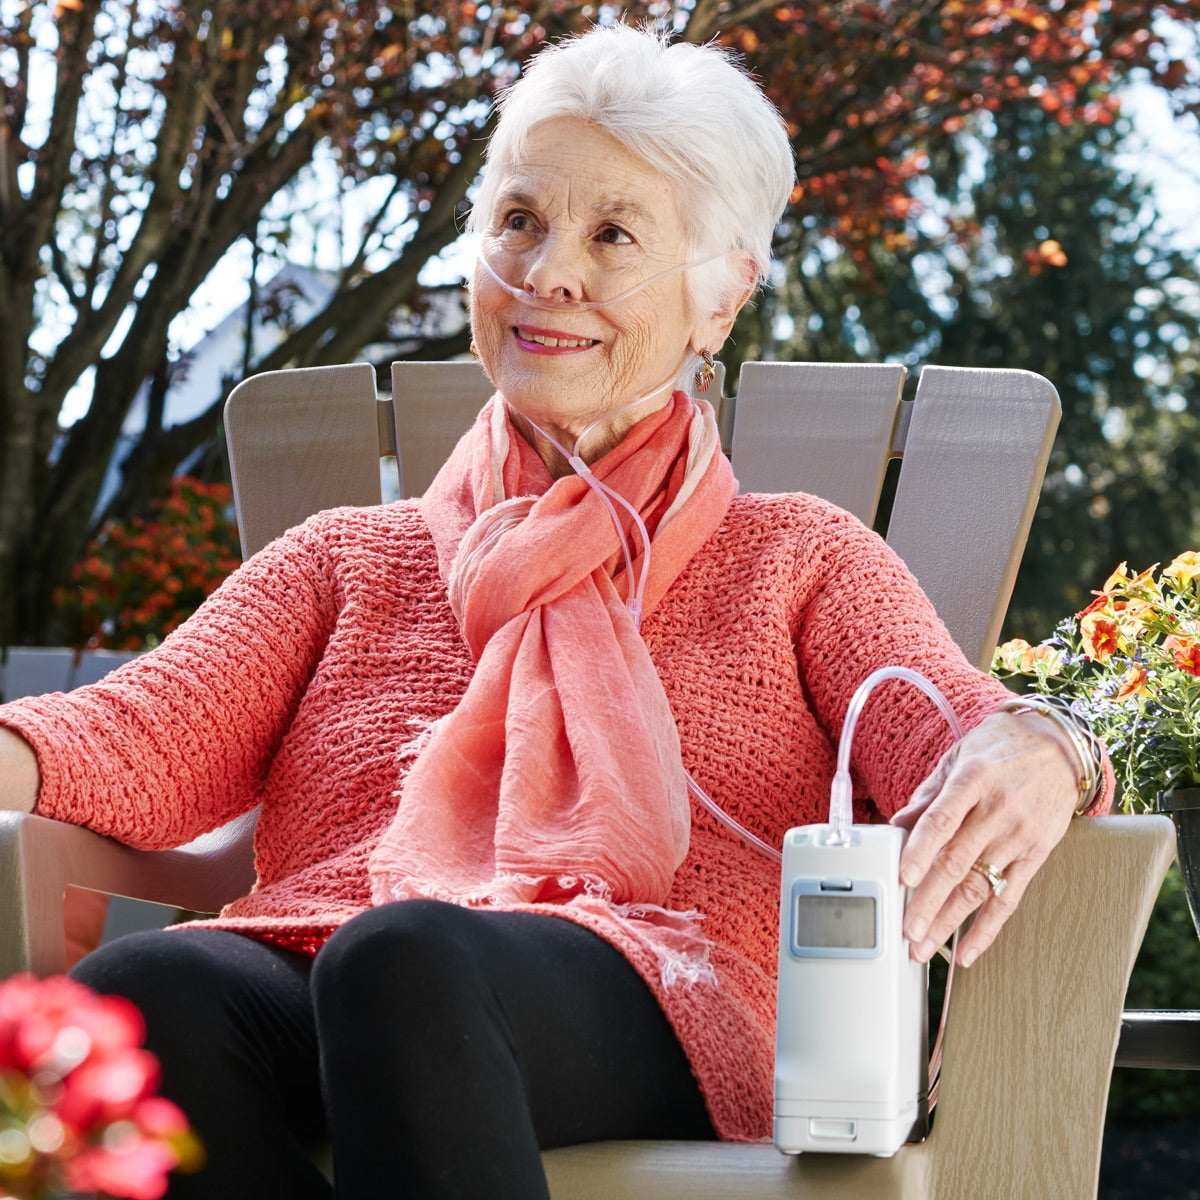 Woman Sitting With The Inogen One G4 Portable Oxygen Concentrator.